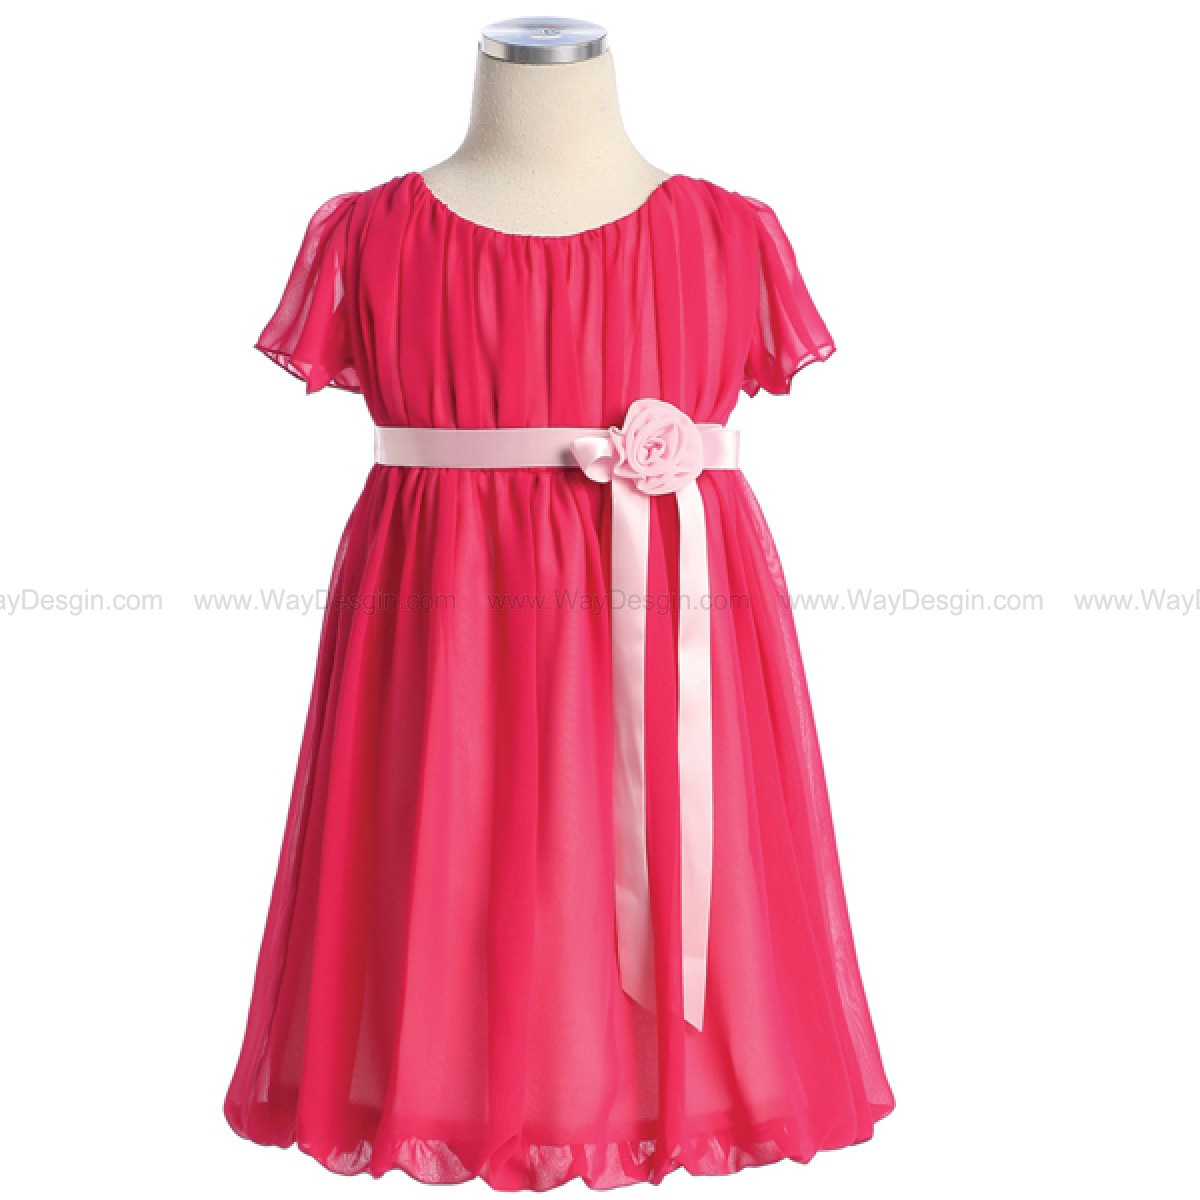 Fuchsia Short Chiffon Dress Satin Ribbon